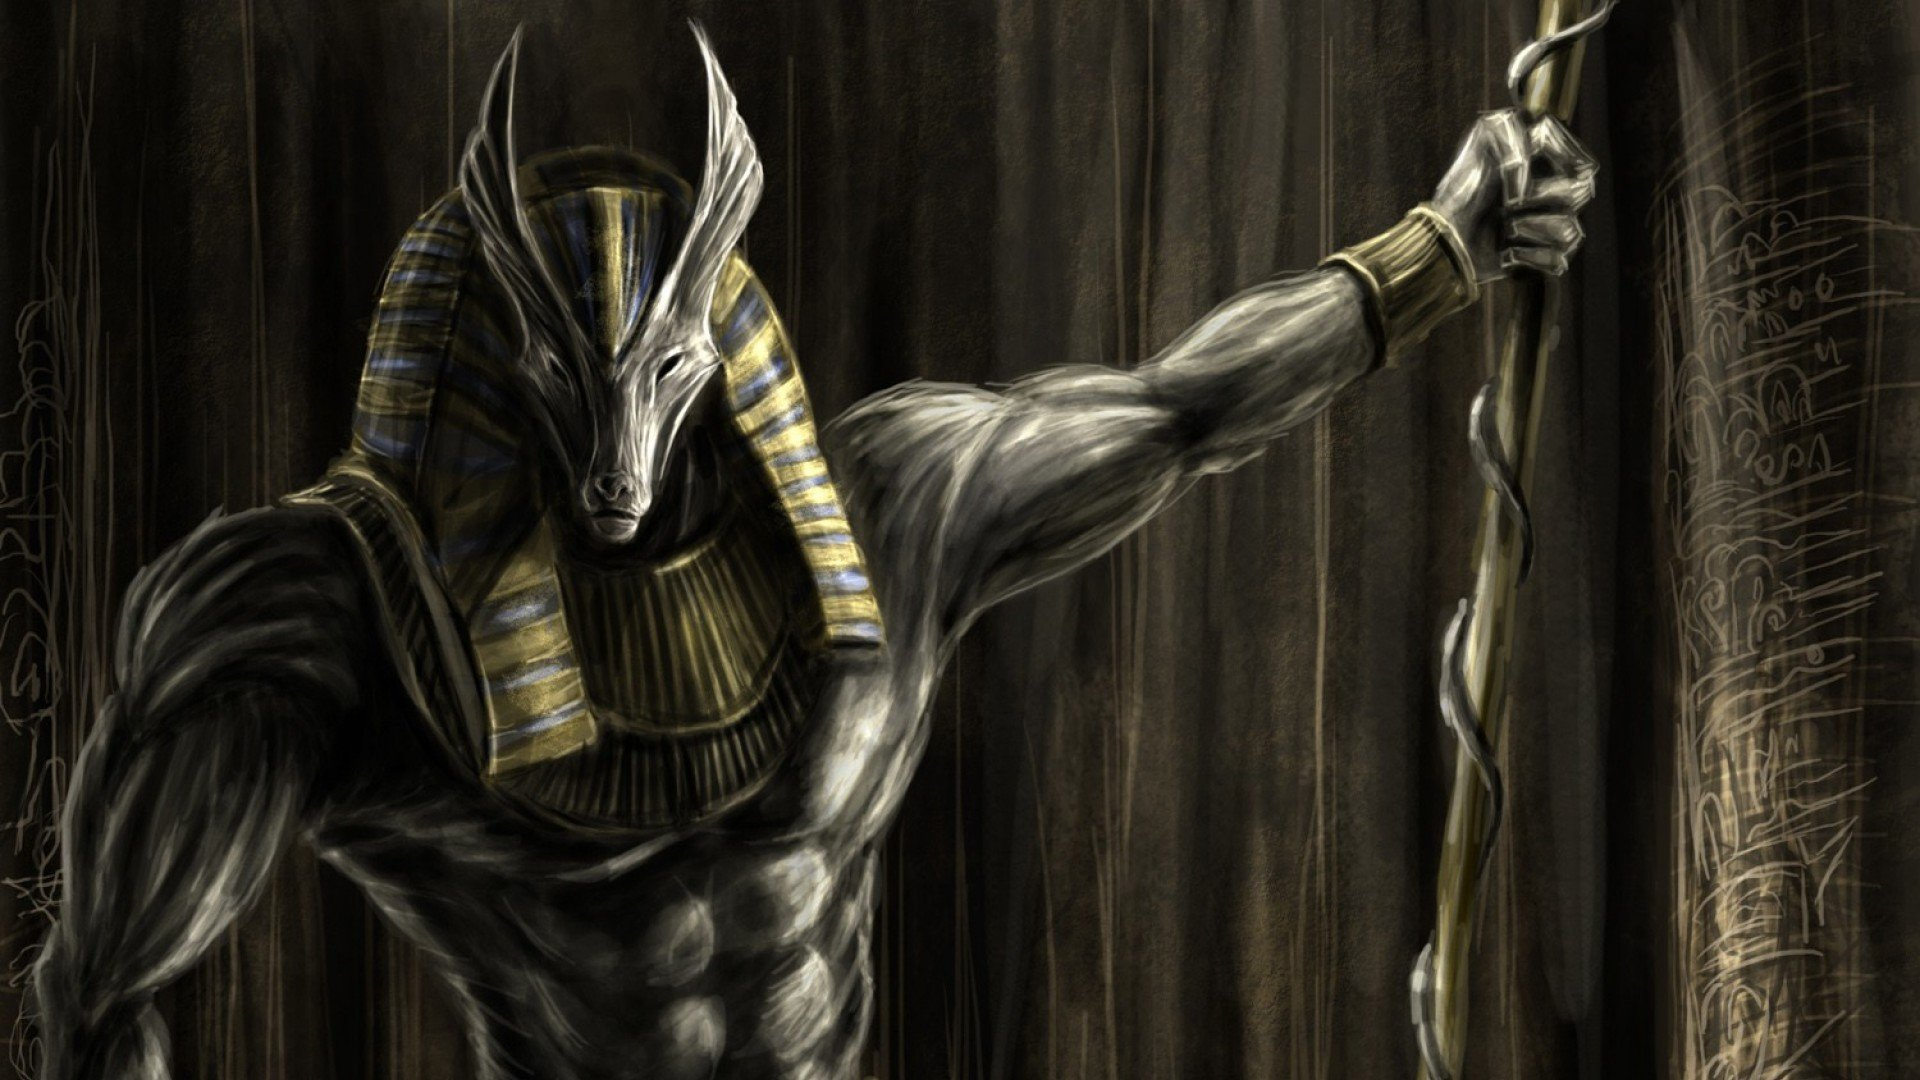 Anubys Egyptian God of the Dead wallpaper background 1920x1080